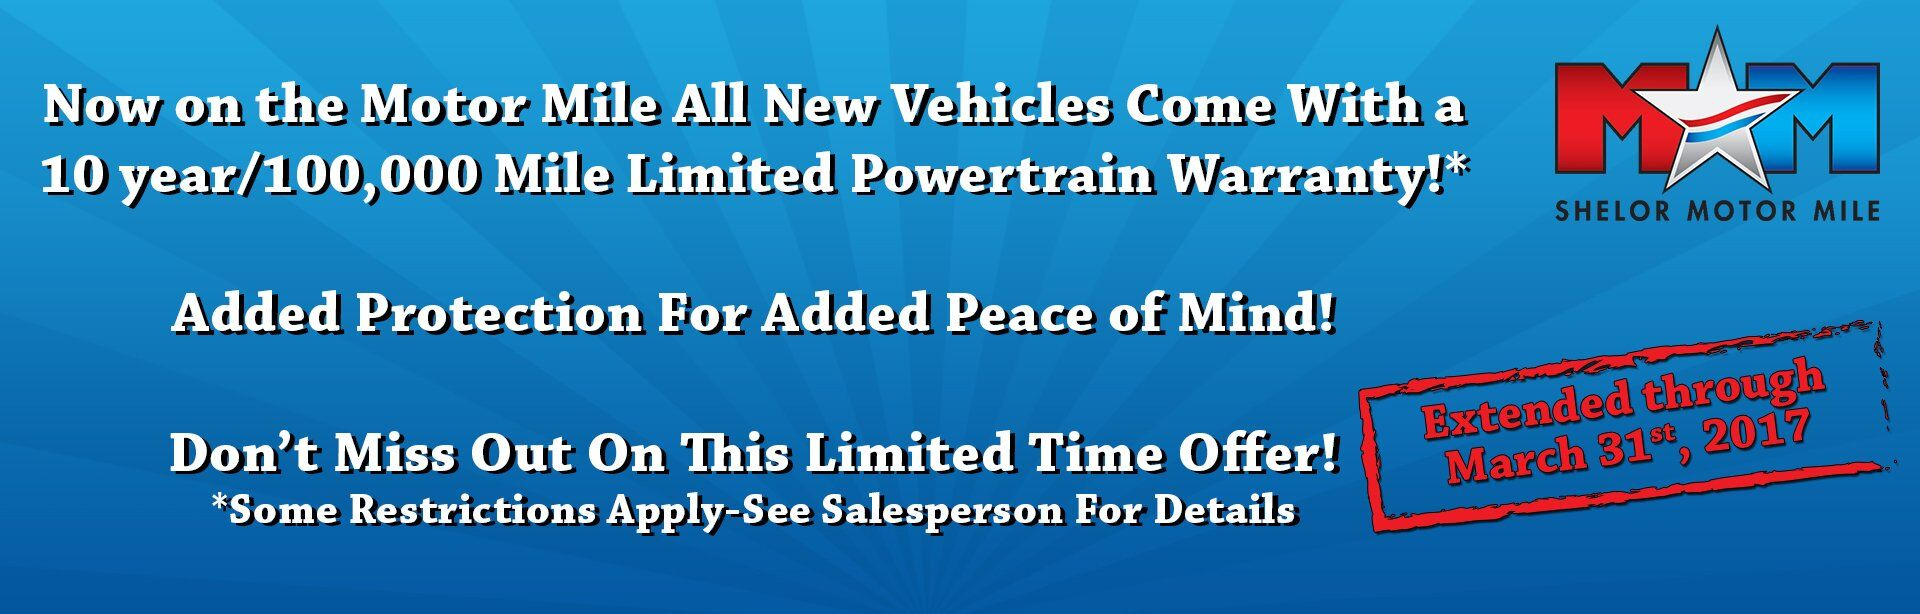 10 Year/100,000 Mile Warranty Extended Until January 31st 2017!